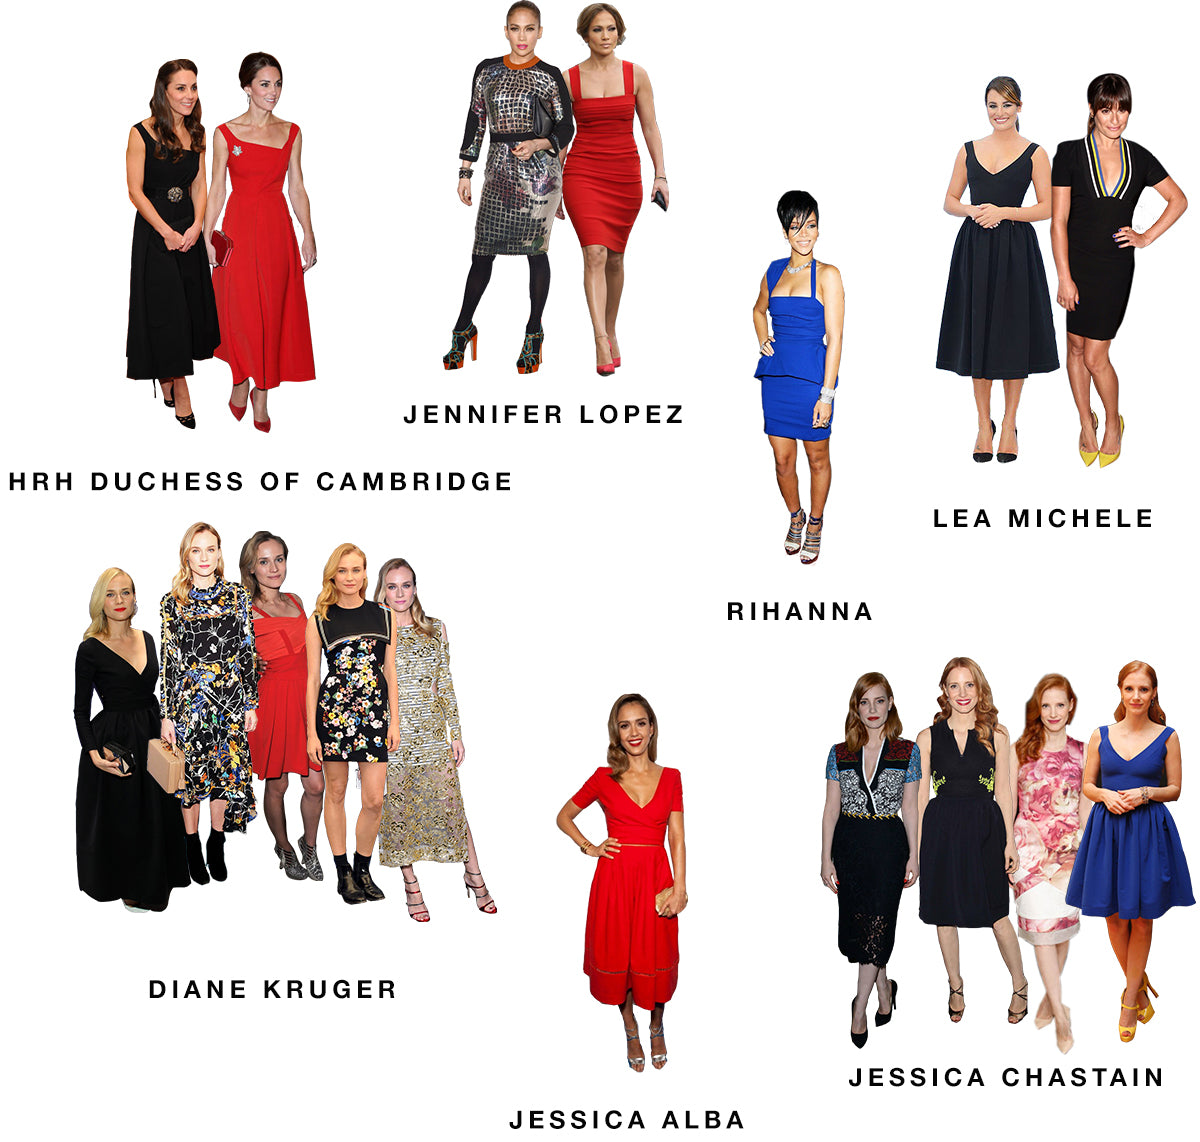 Kate Middleton, Jennifer Lopez, Rihanna, Lea Michele, Diane Kruger, Jessica Alba and Jessica Chastain in Preen